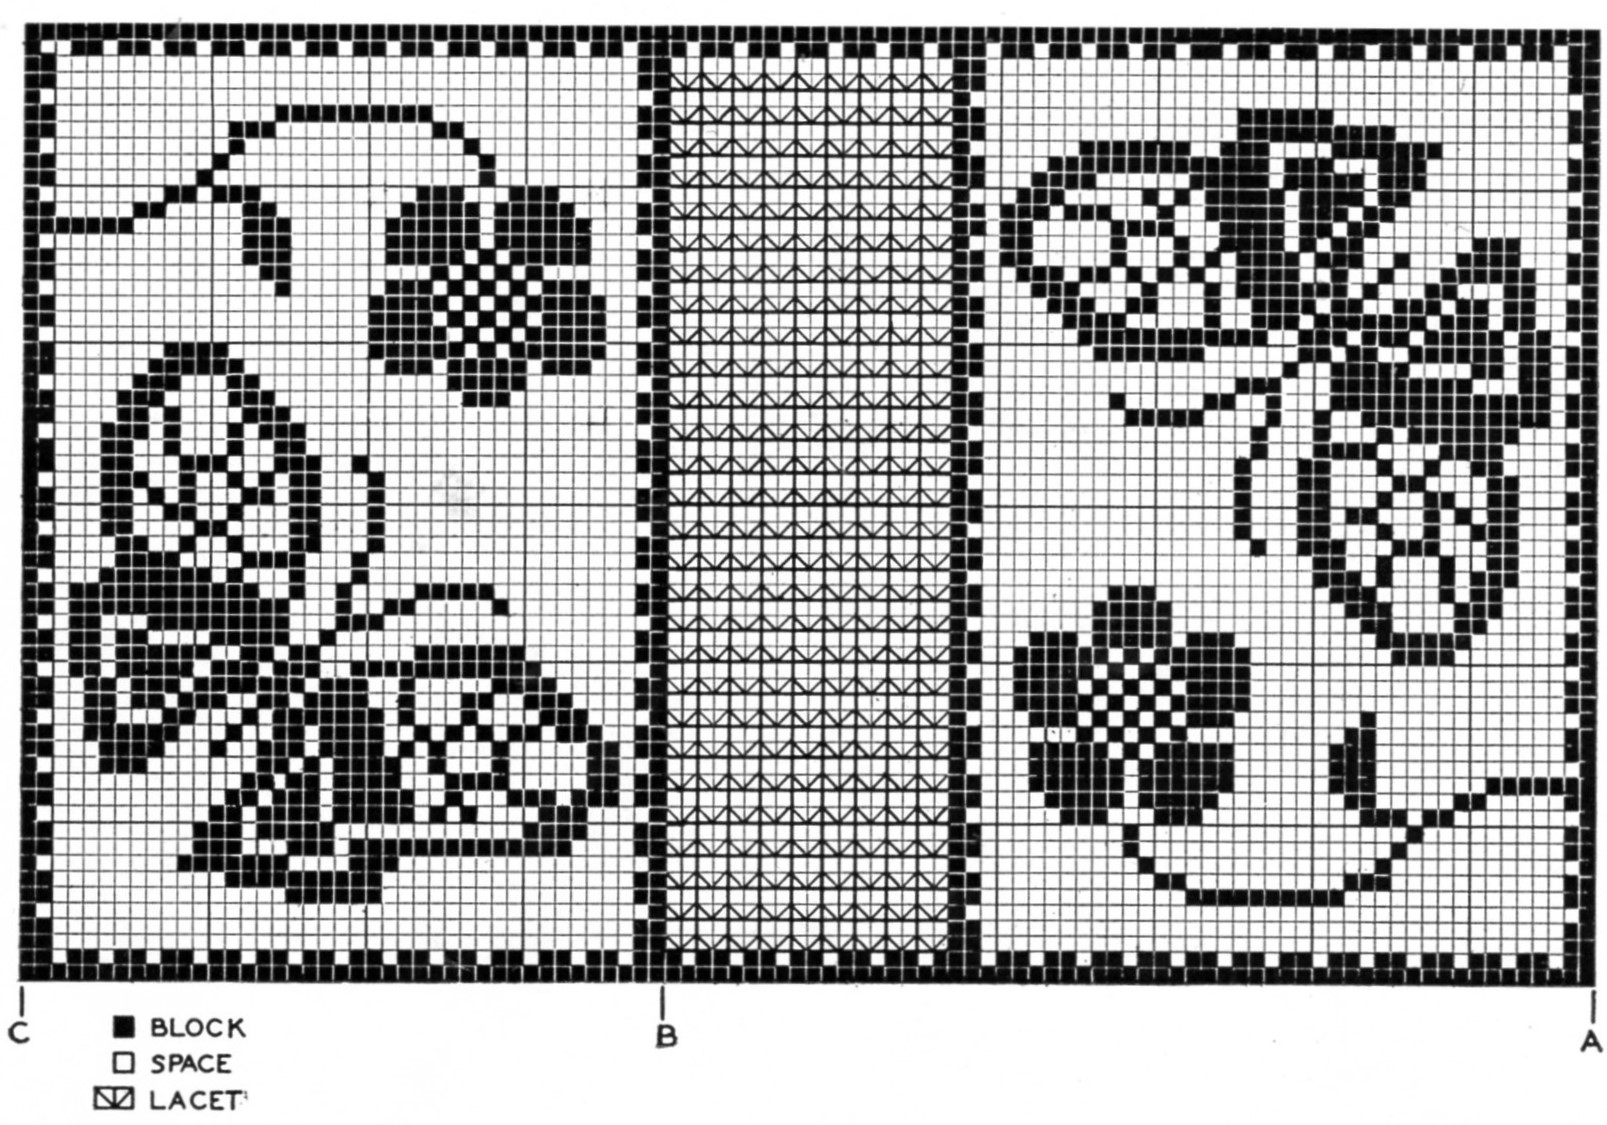 Butterflies in the garden filet crochet free pattern vintage butterflies in the garden filet crochet chart ccuart Gallery